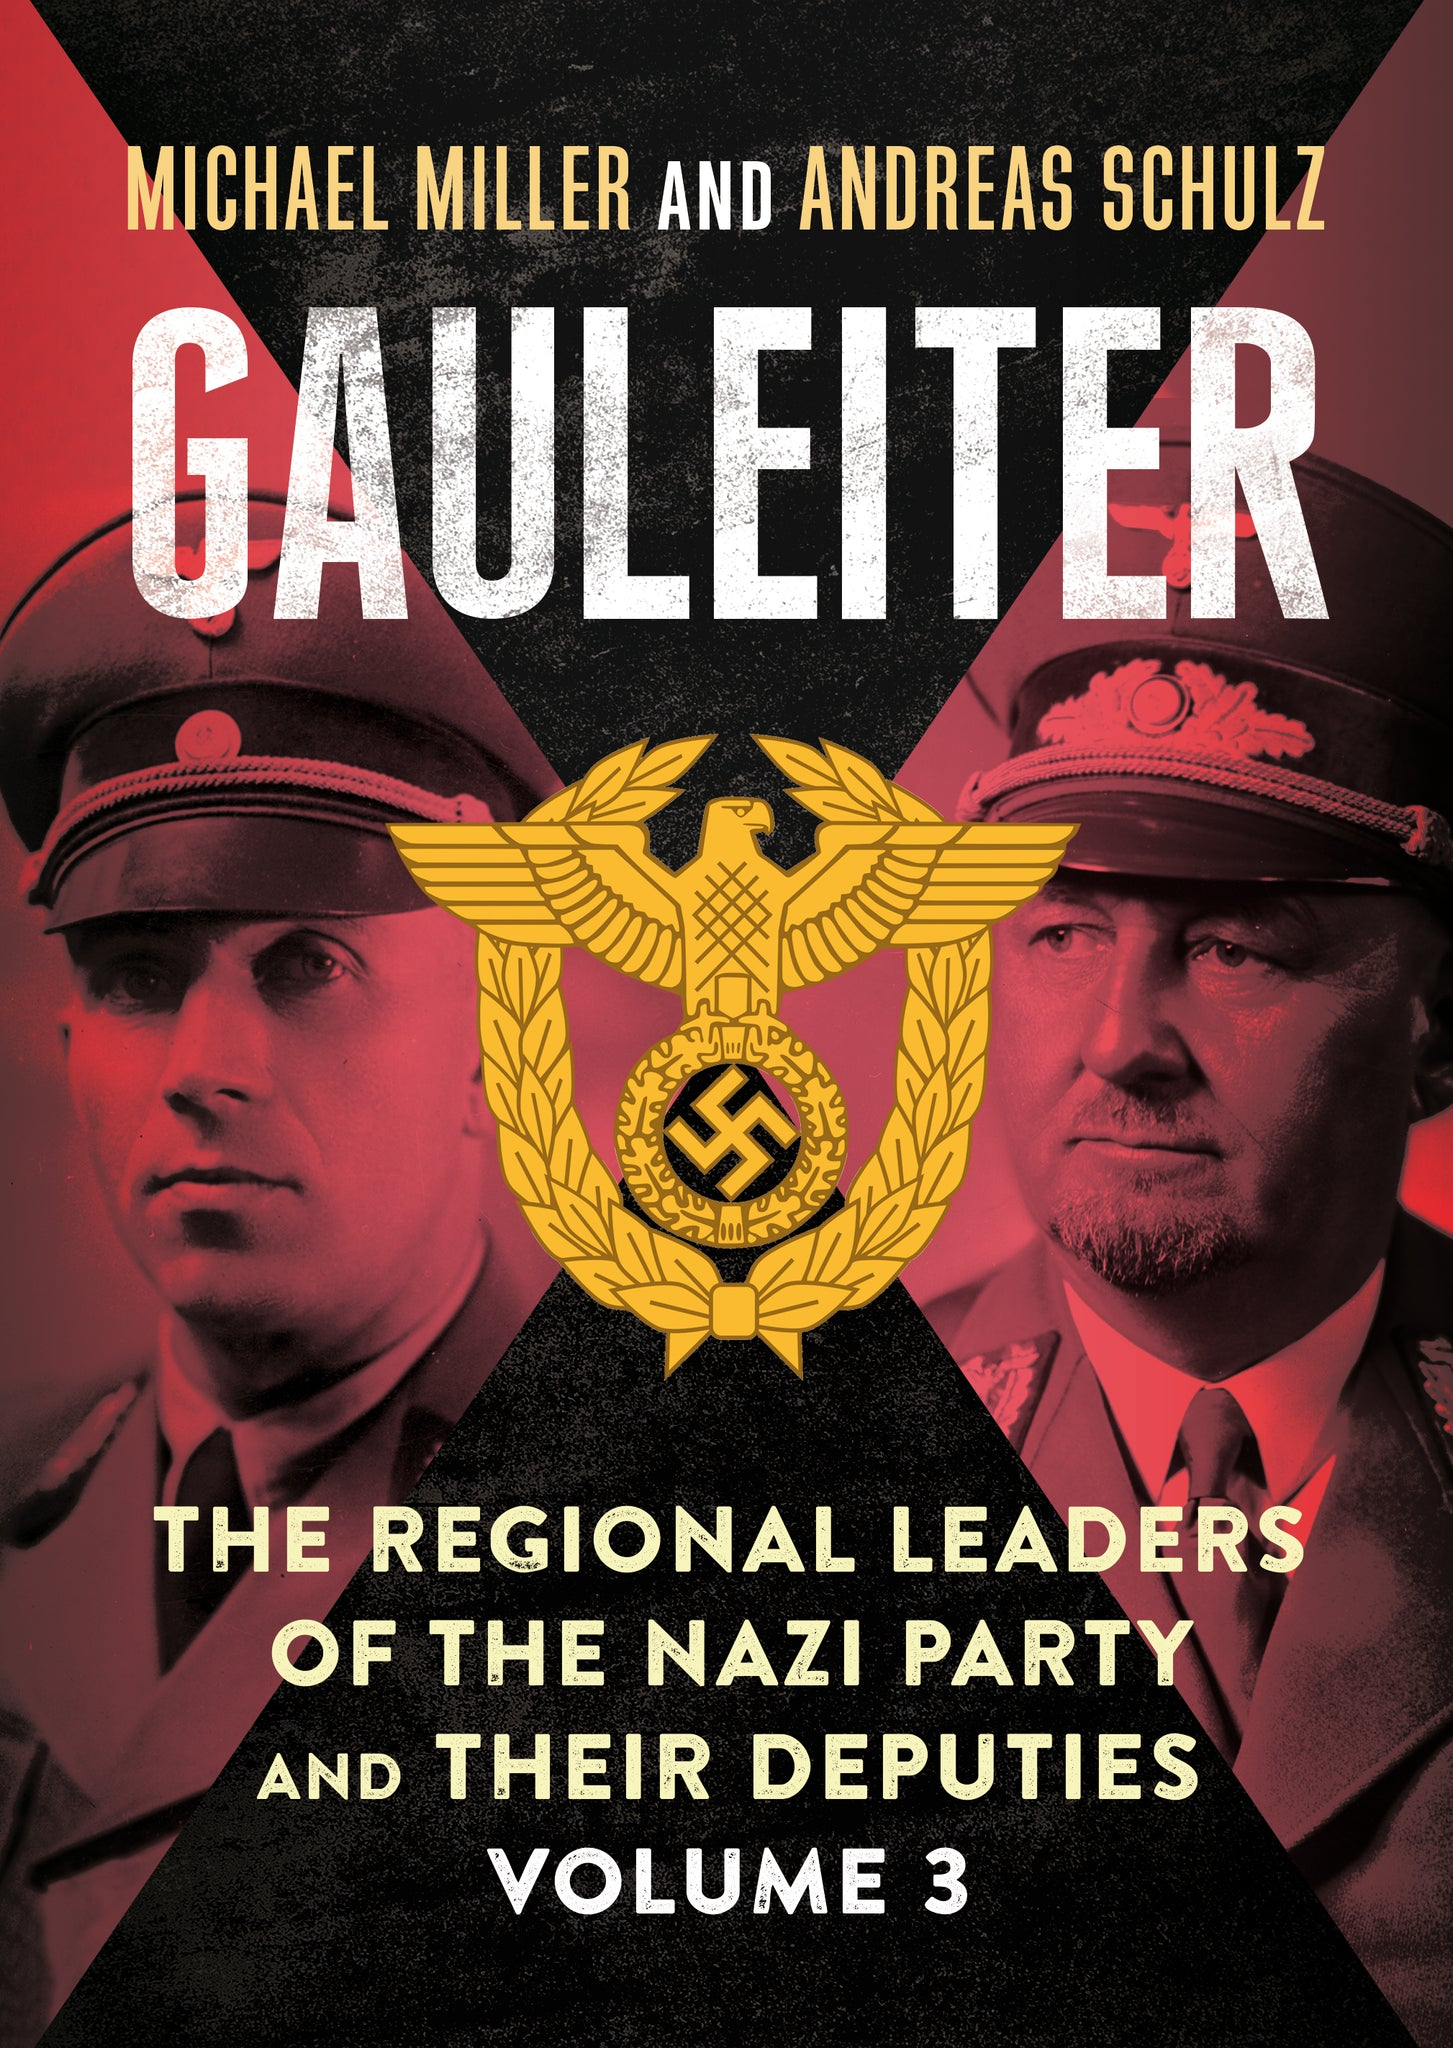 Gauleiter: The Regional Leaders of the Nazi Party and Their Deputies Volume 3